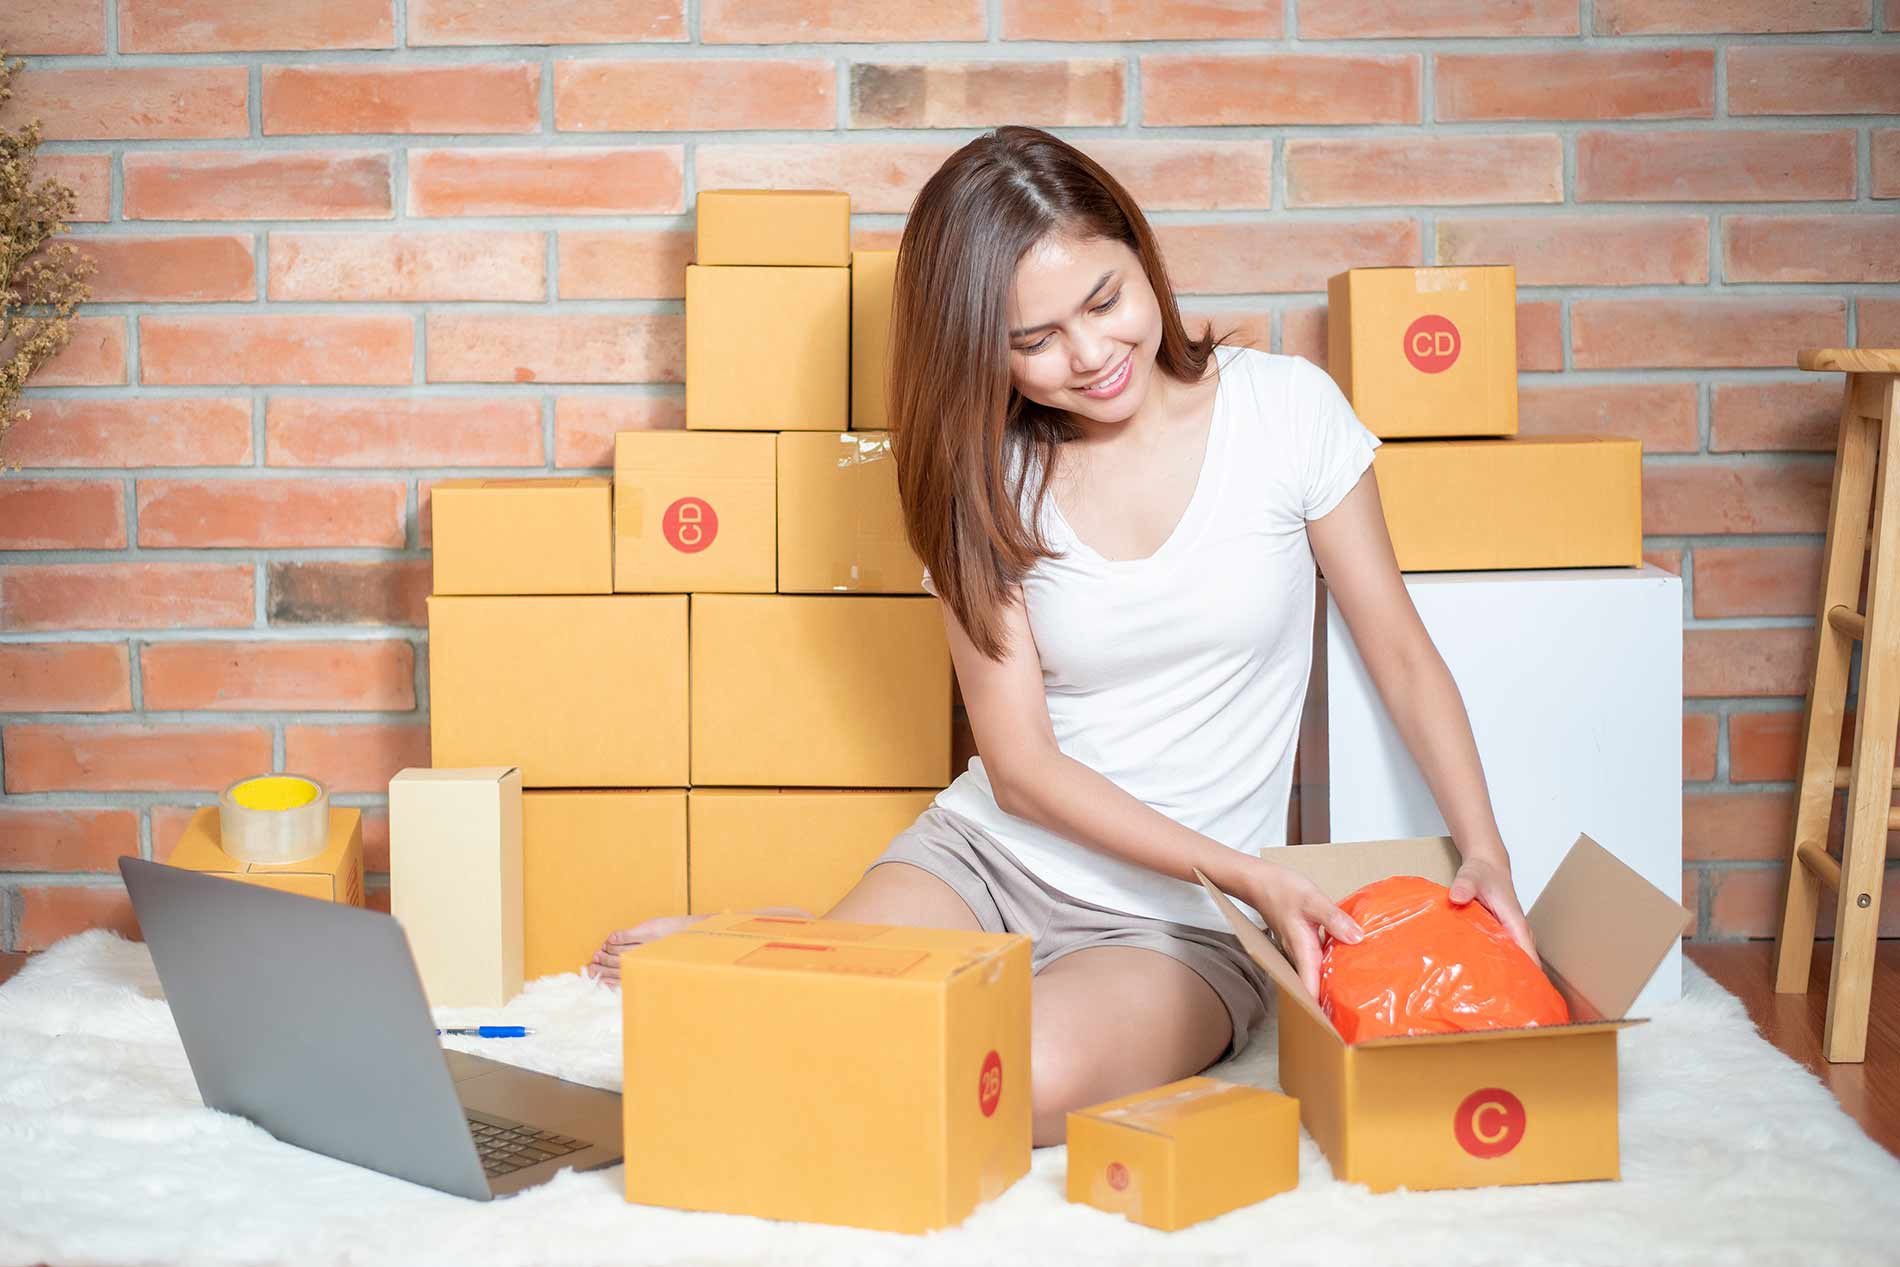 Selling products online successfully